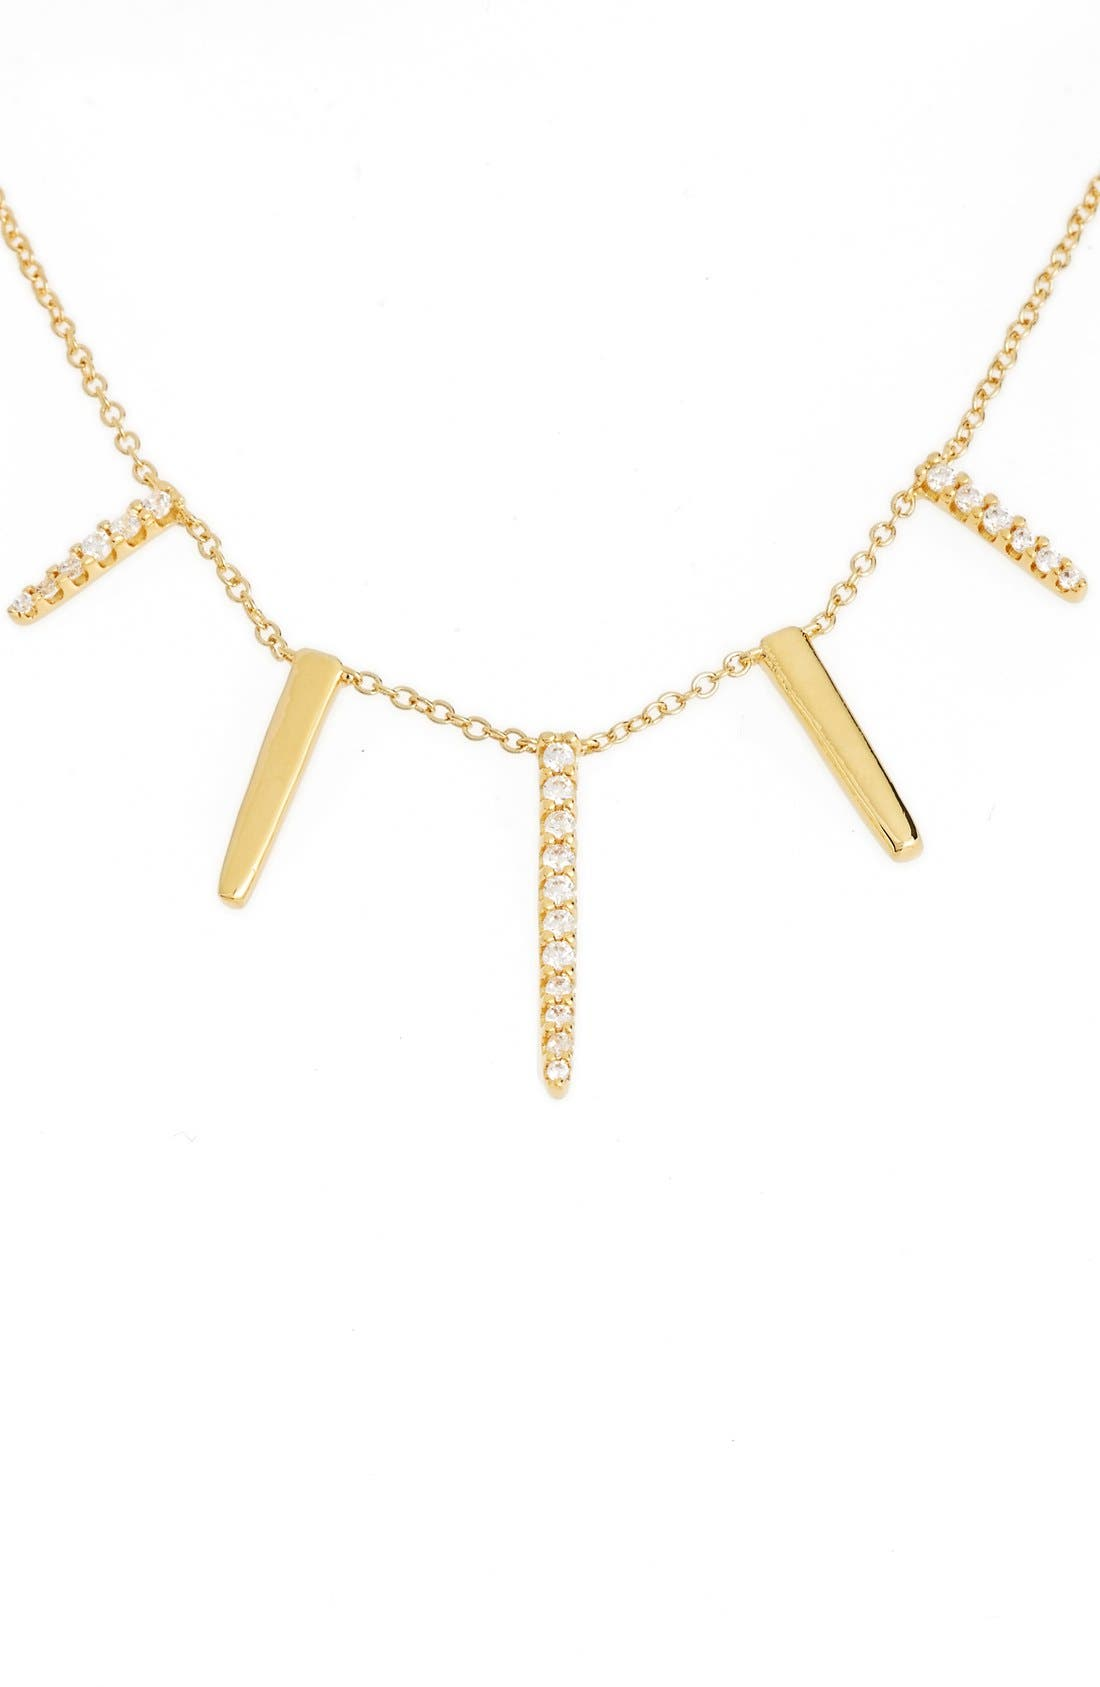 Pavé Spike Cubic Zirconia Frontal Necklace,                             Alternate thumbnail 2, color,                             Gold